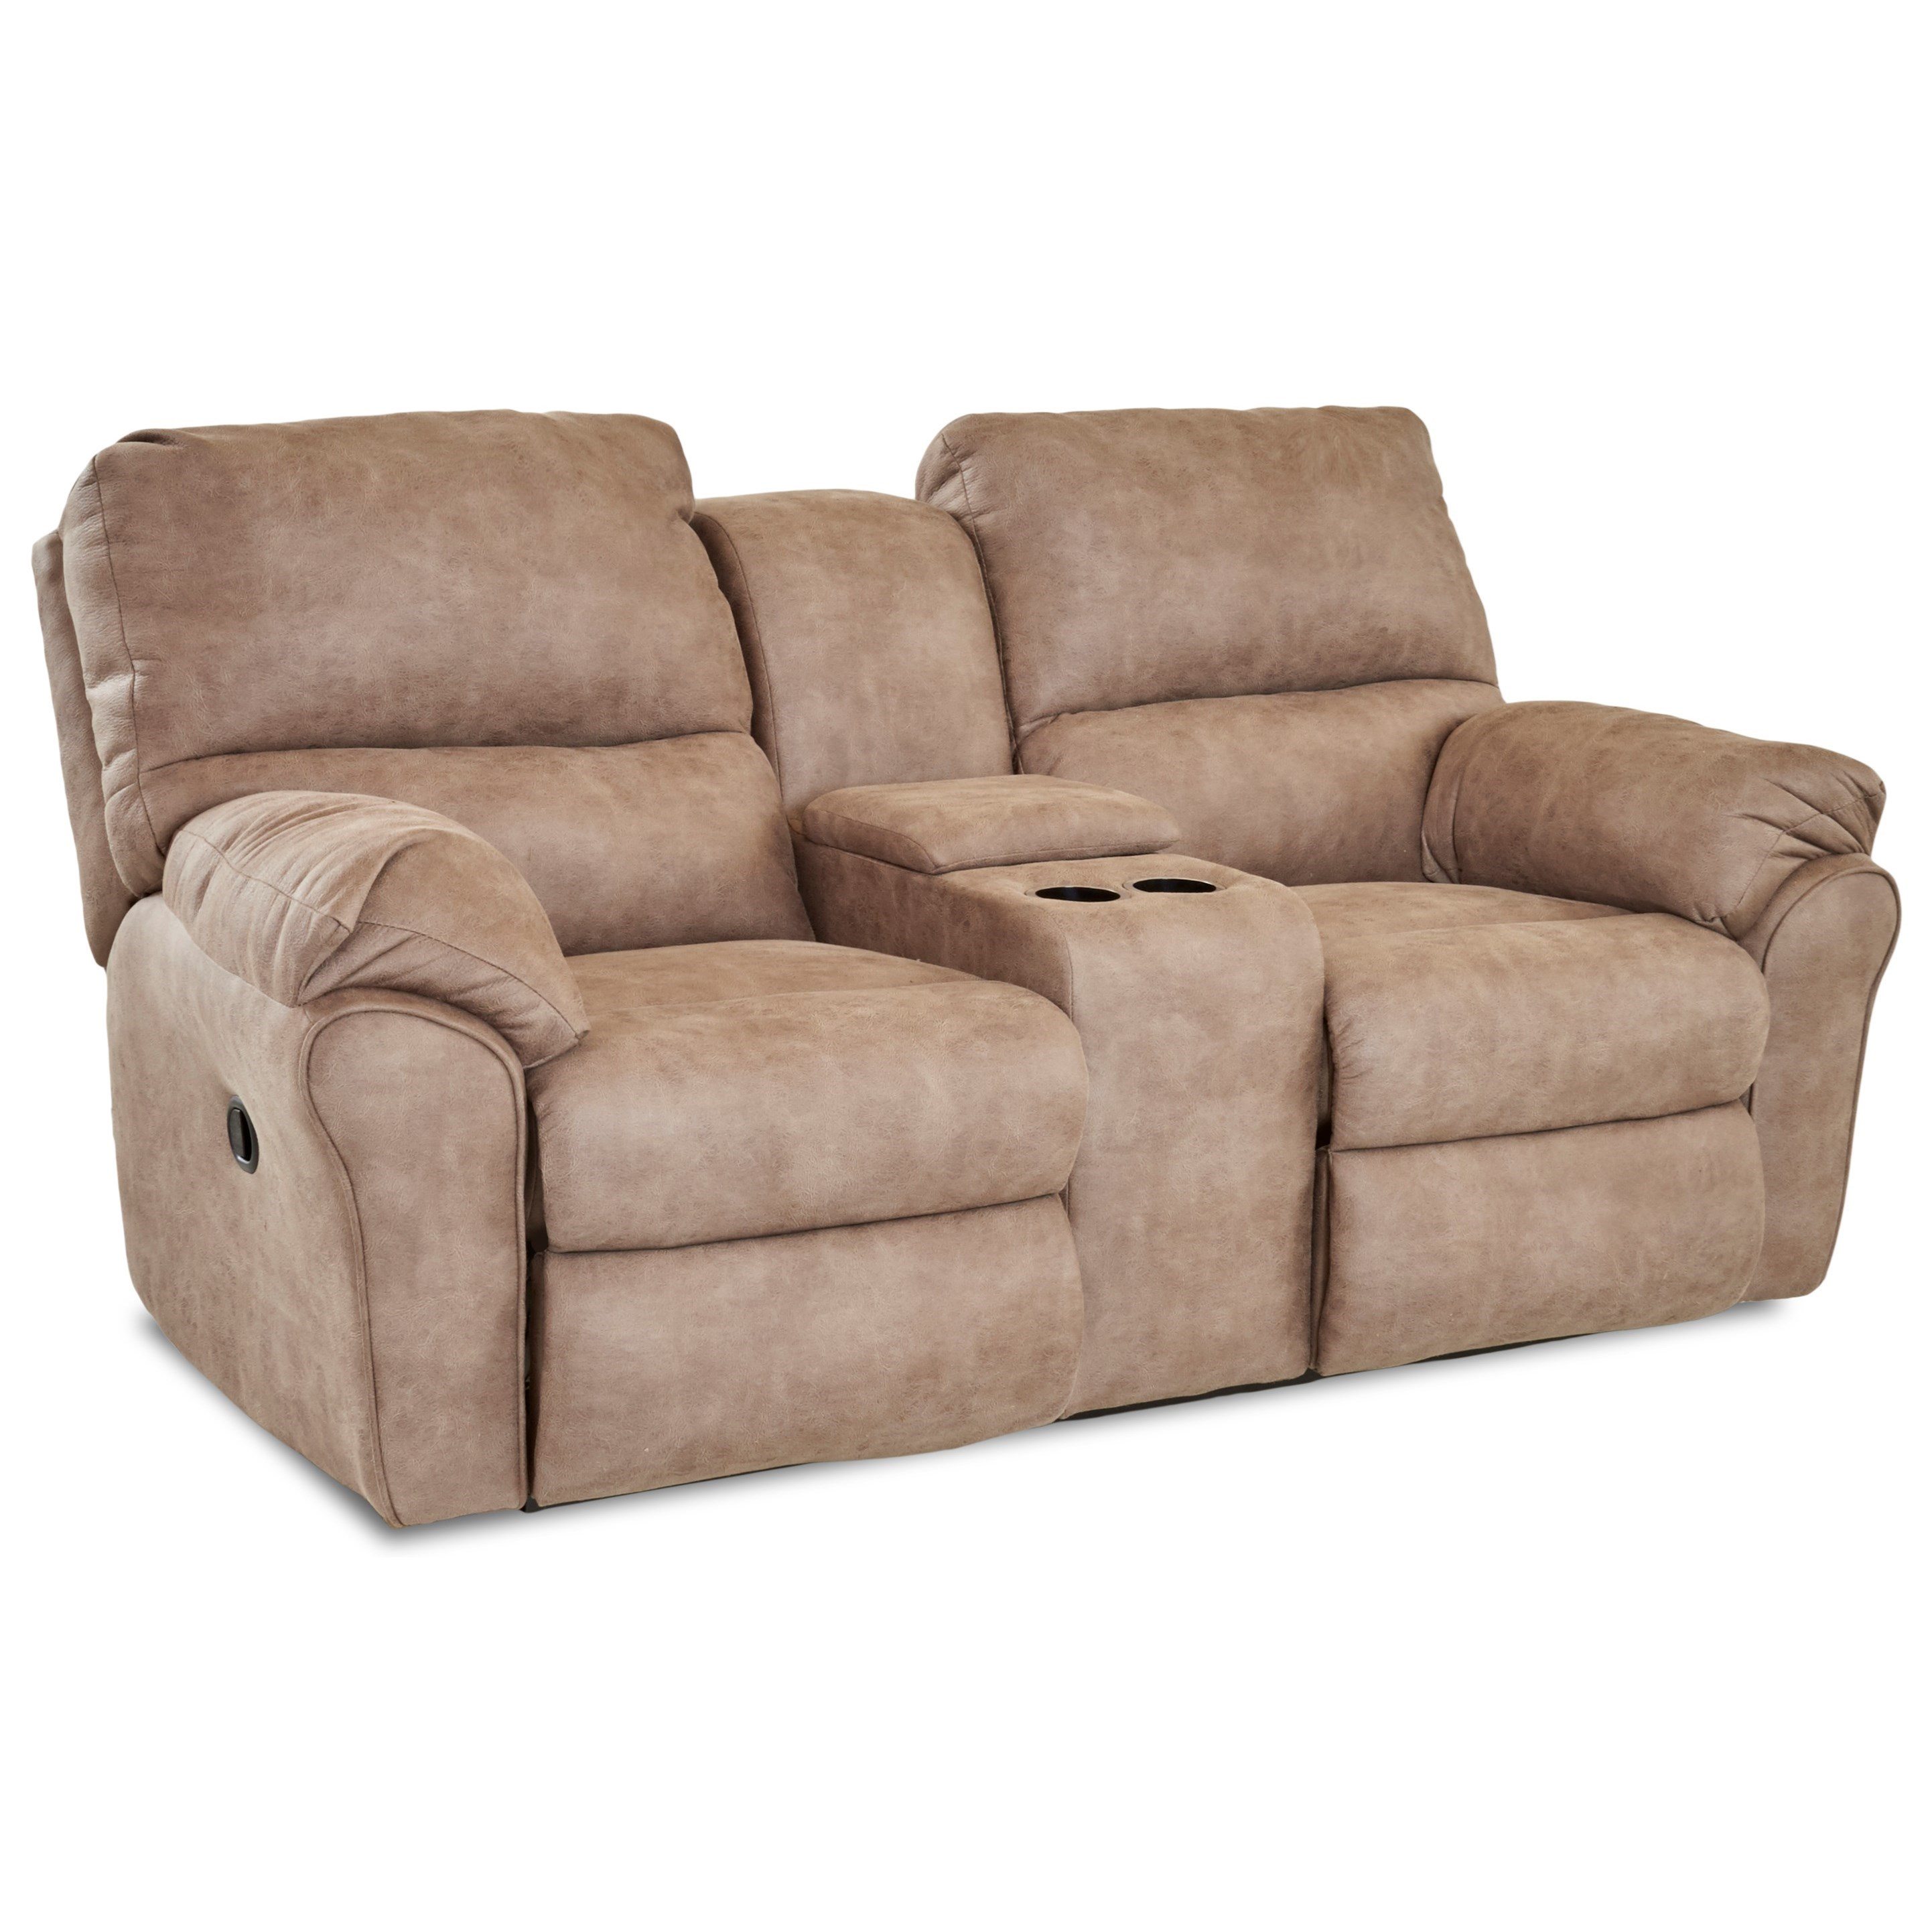 Bateman Leather Armchair: Klaussner Bateman Casual Power Reclining Loveseat With